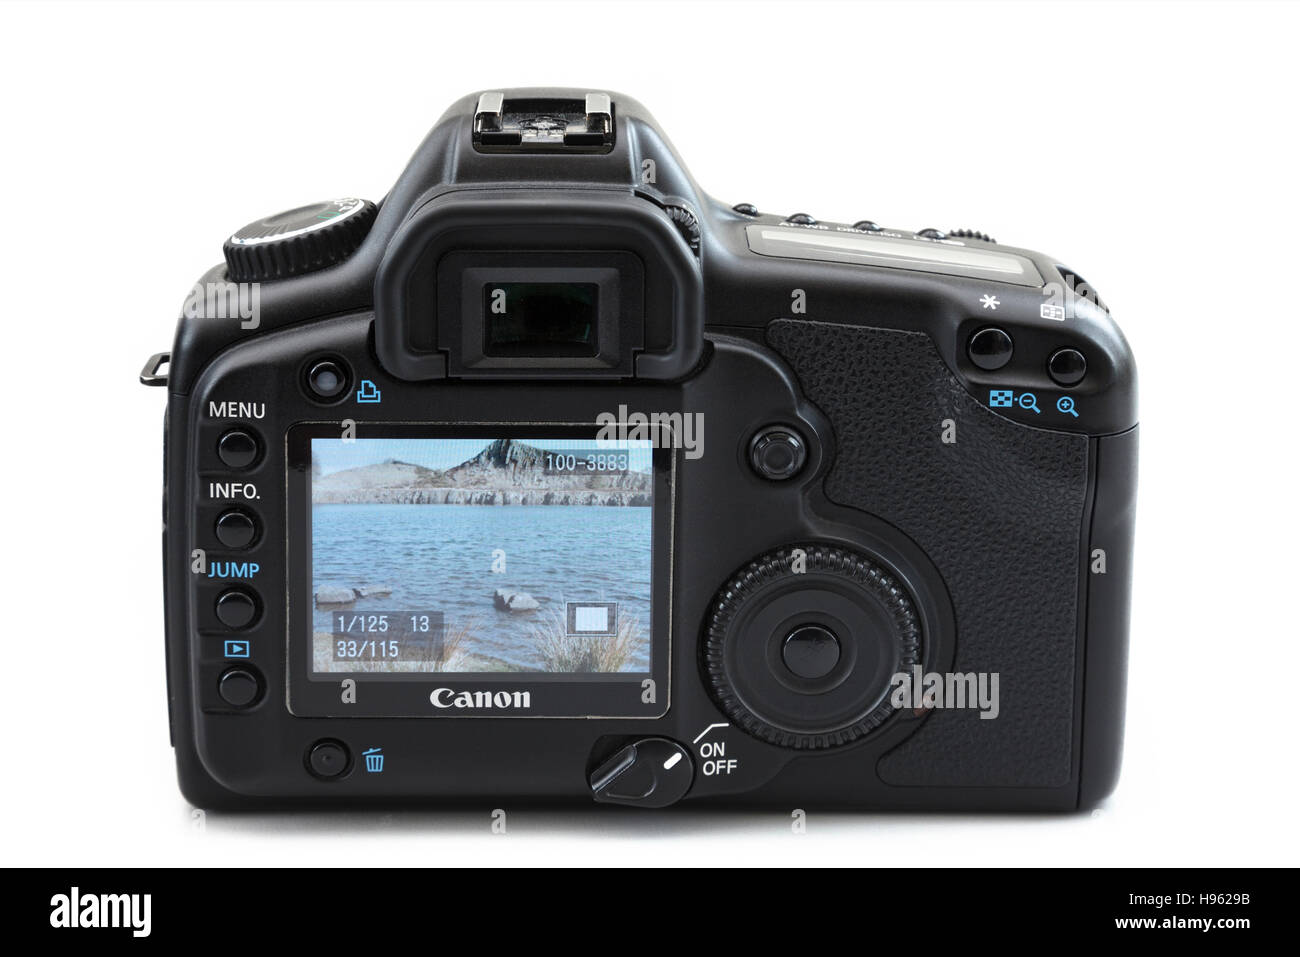 LCD screen on back of a Canon 5D mk II digital SLR camera showing a photograph of a coastal outdoor scene. Isolated - Stock Image